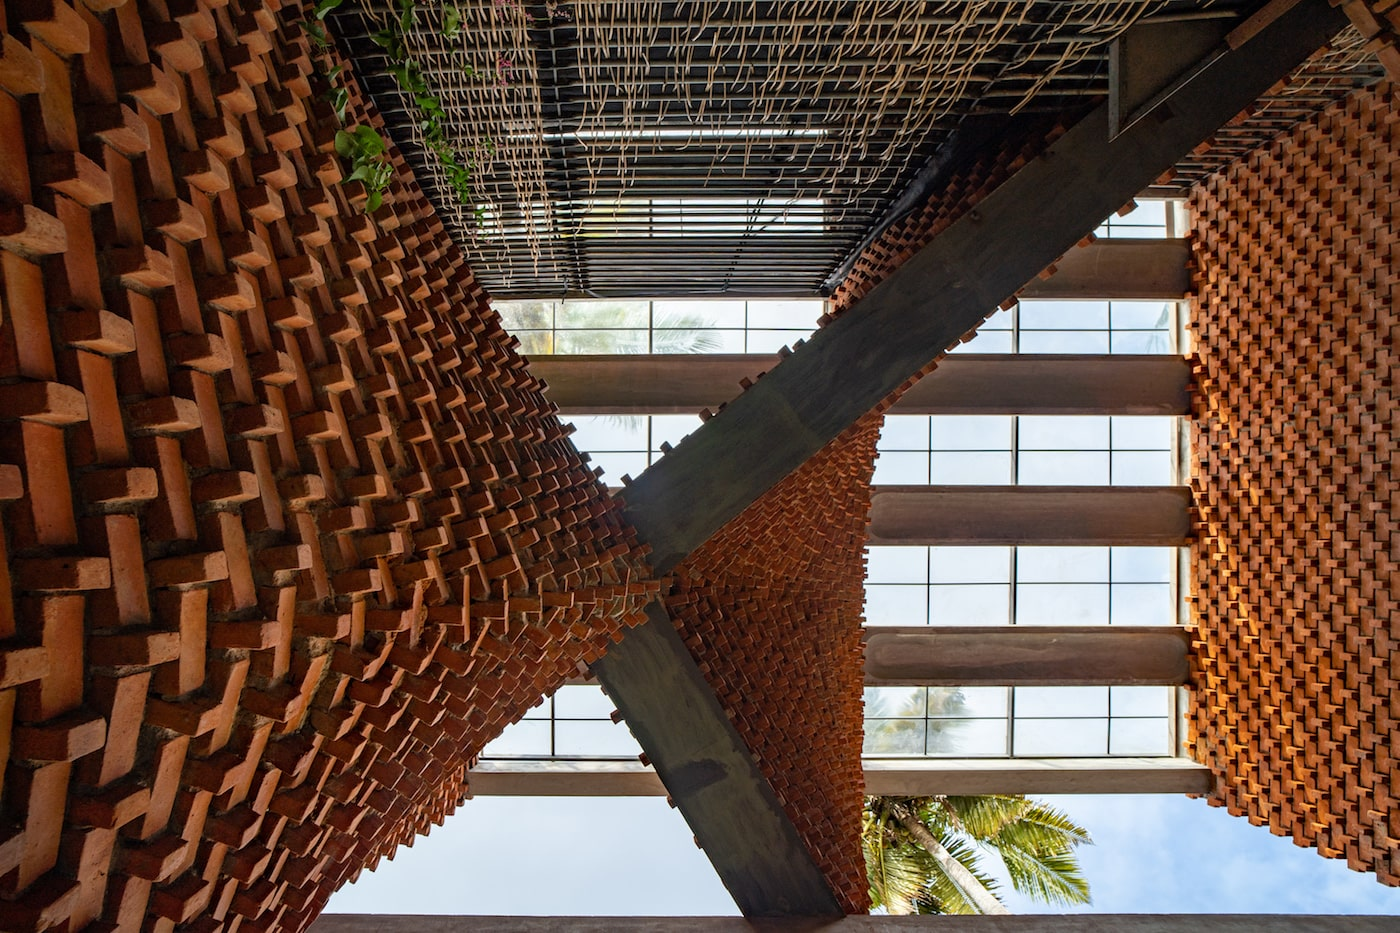 Looking up curved brickwork of Pirouette House